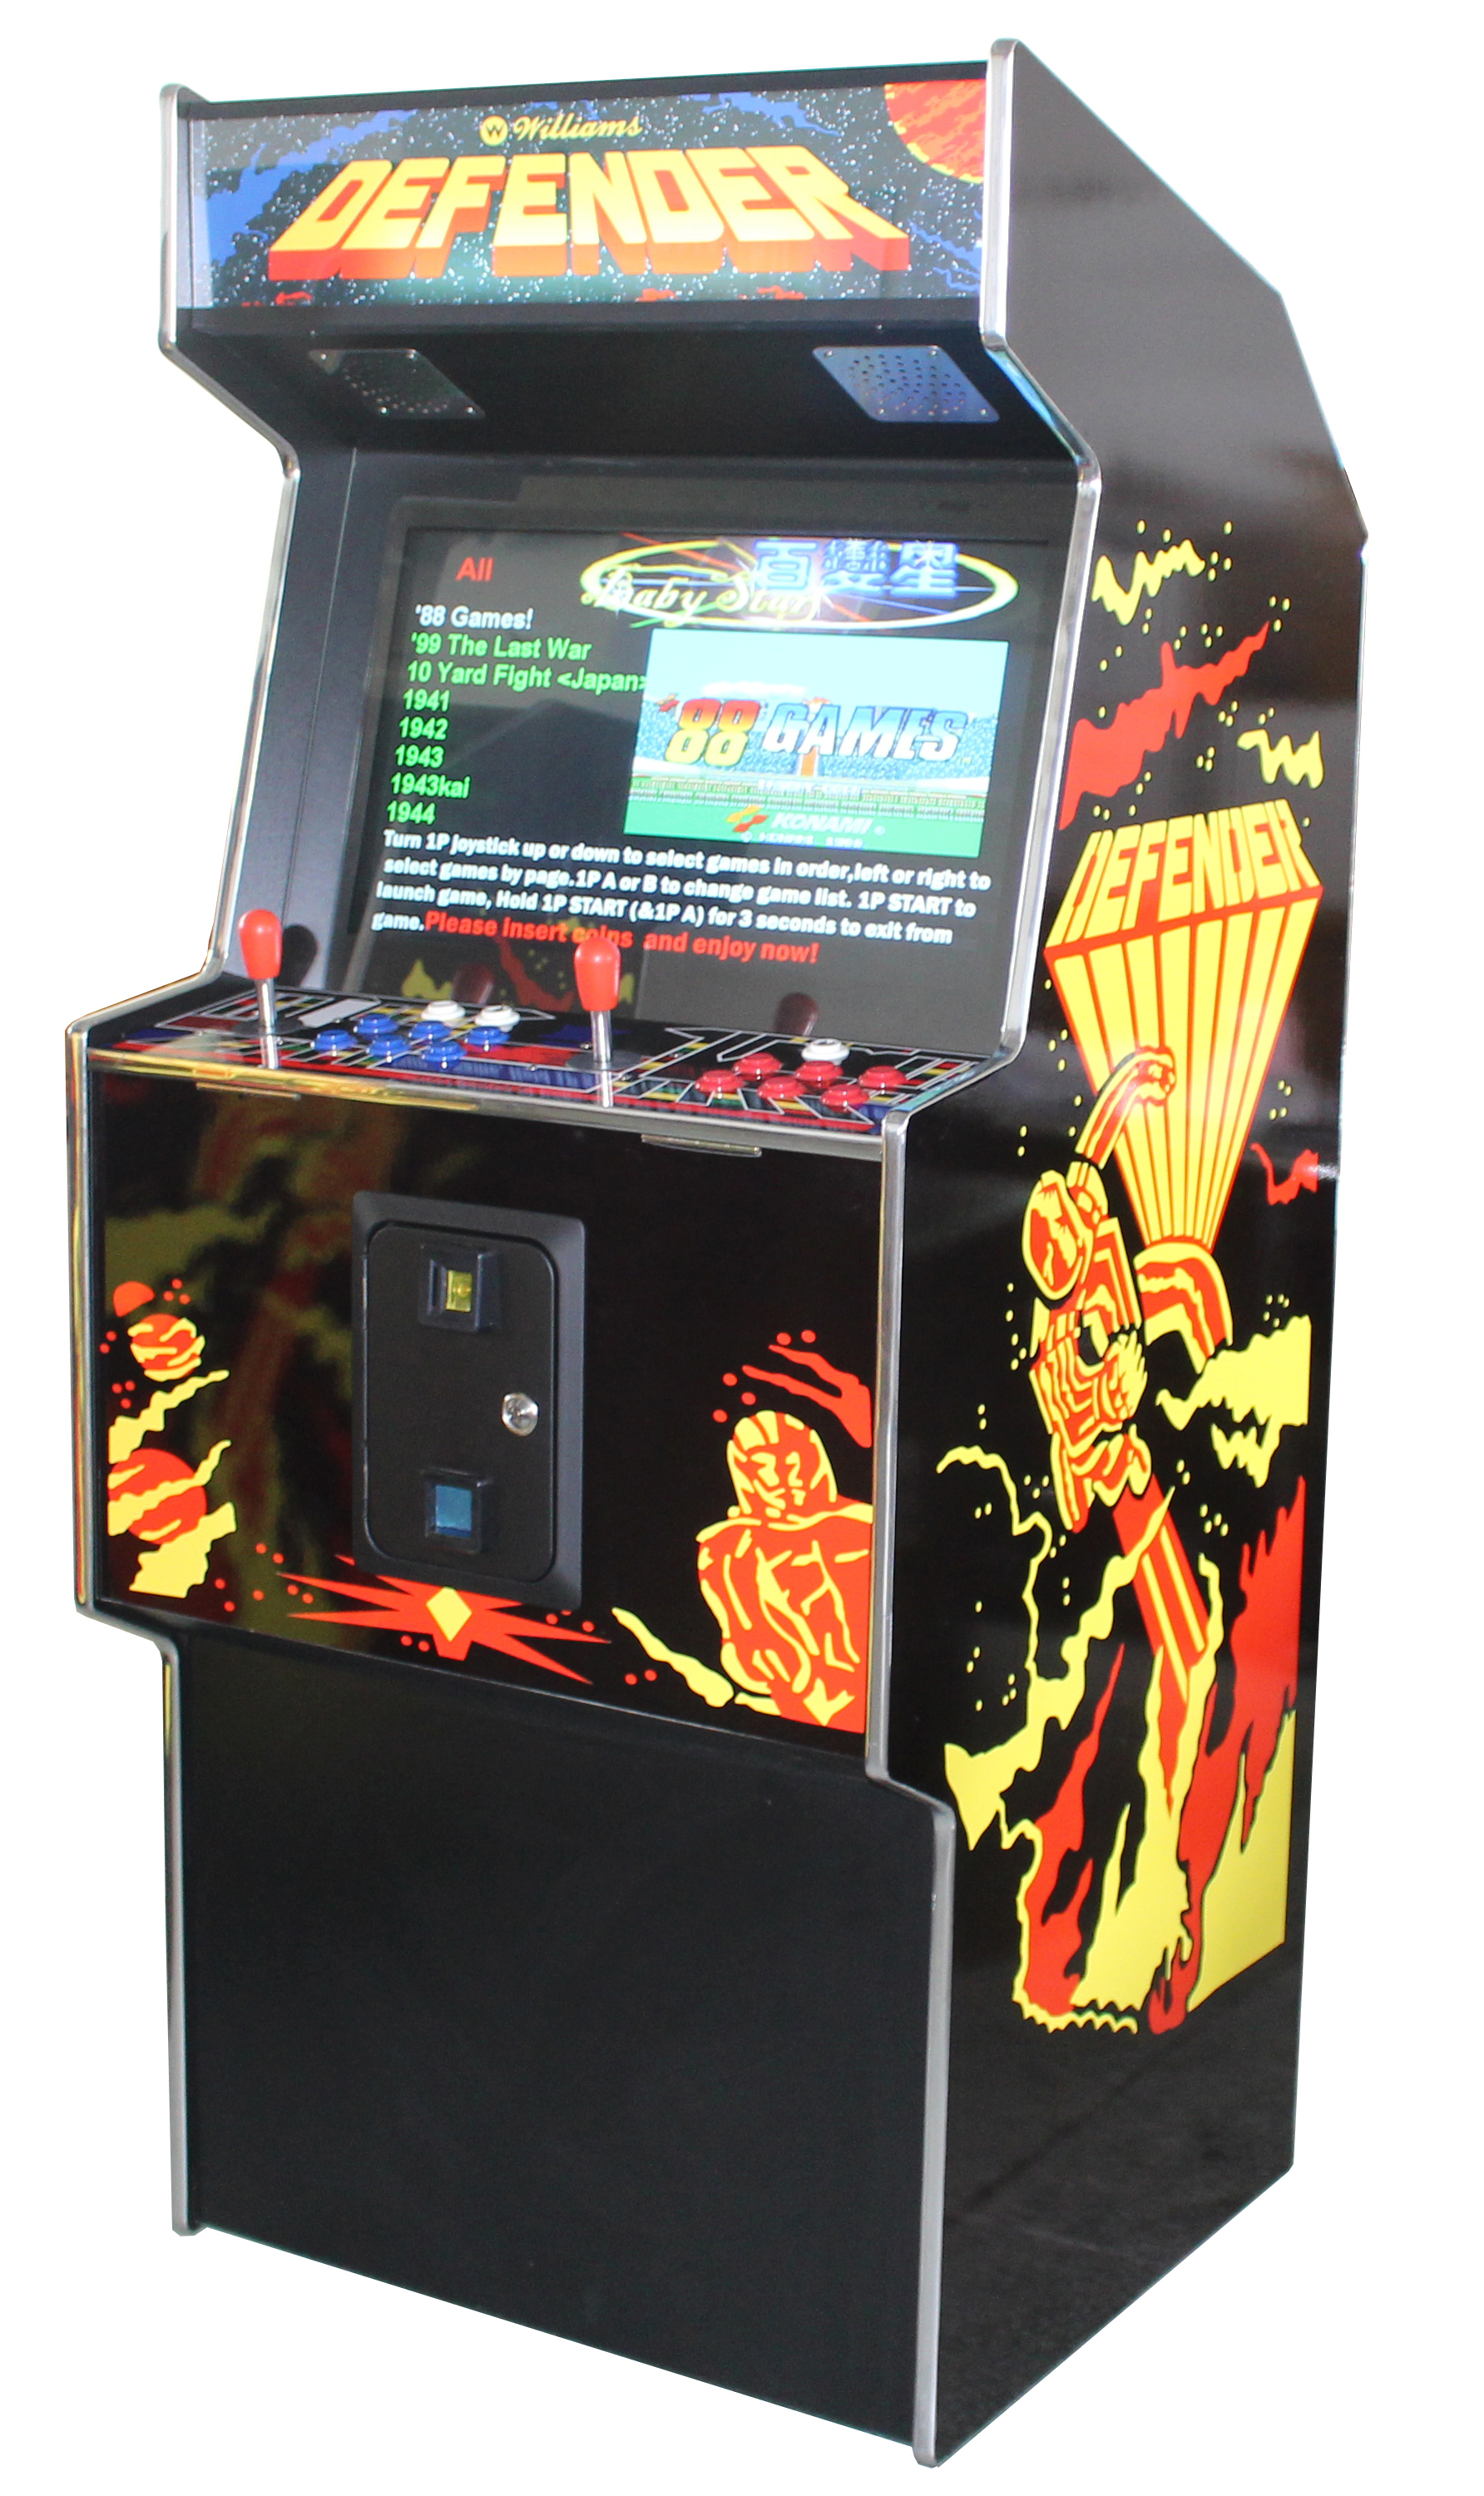 Arcade Rewind 3500 Game Upright Arcade Machine Defender